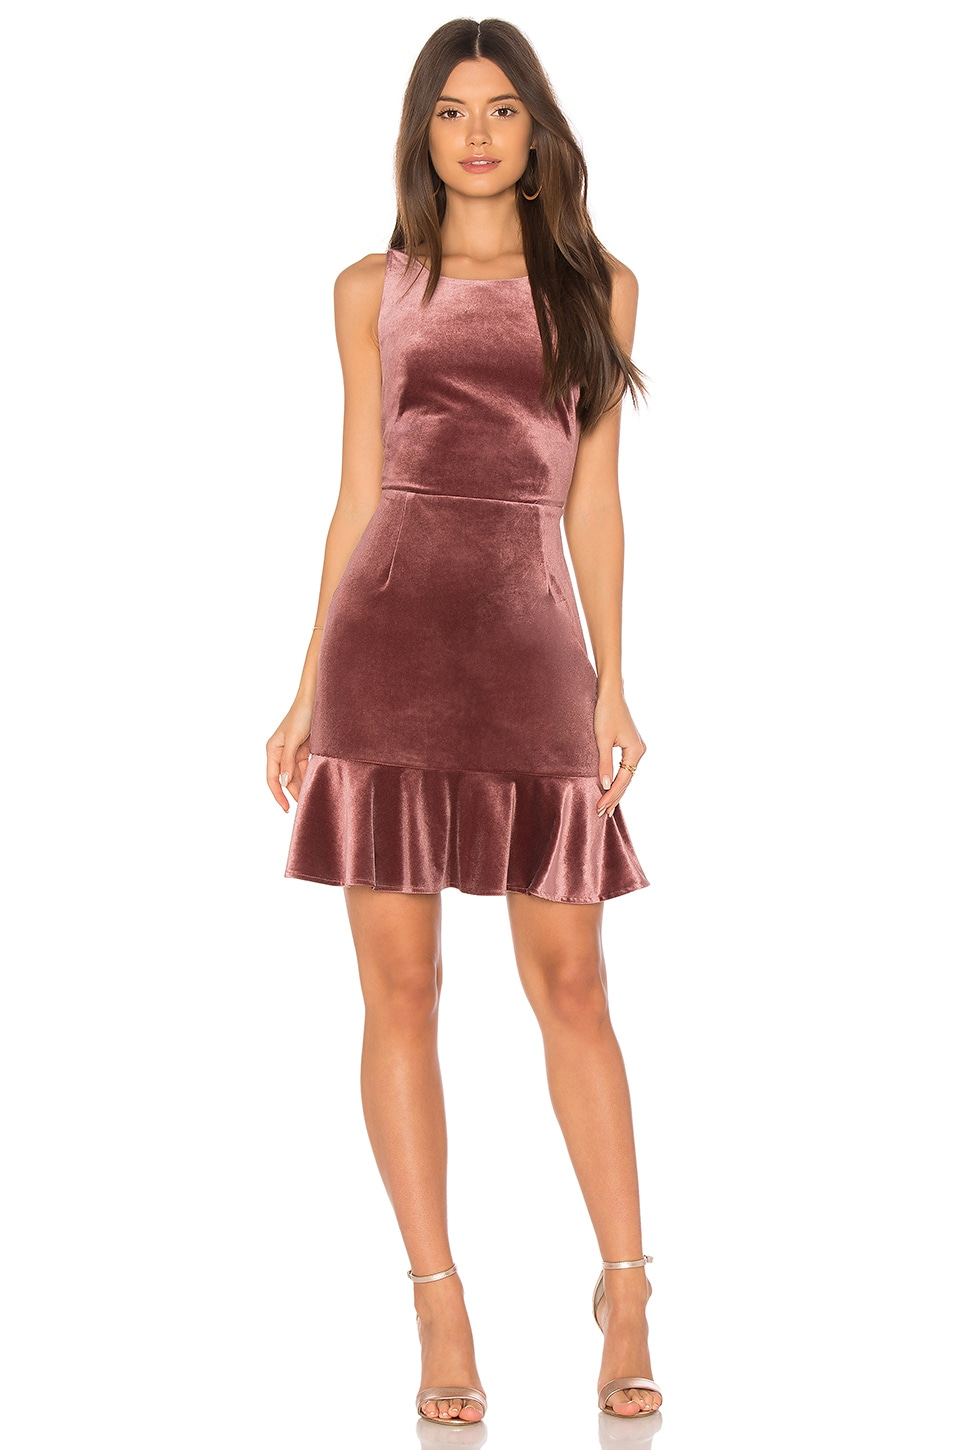 Rebecca Minkoff Tiffany Dress in Mauve